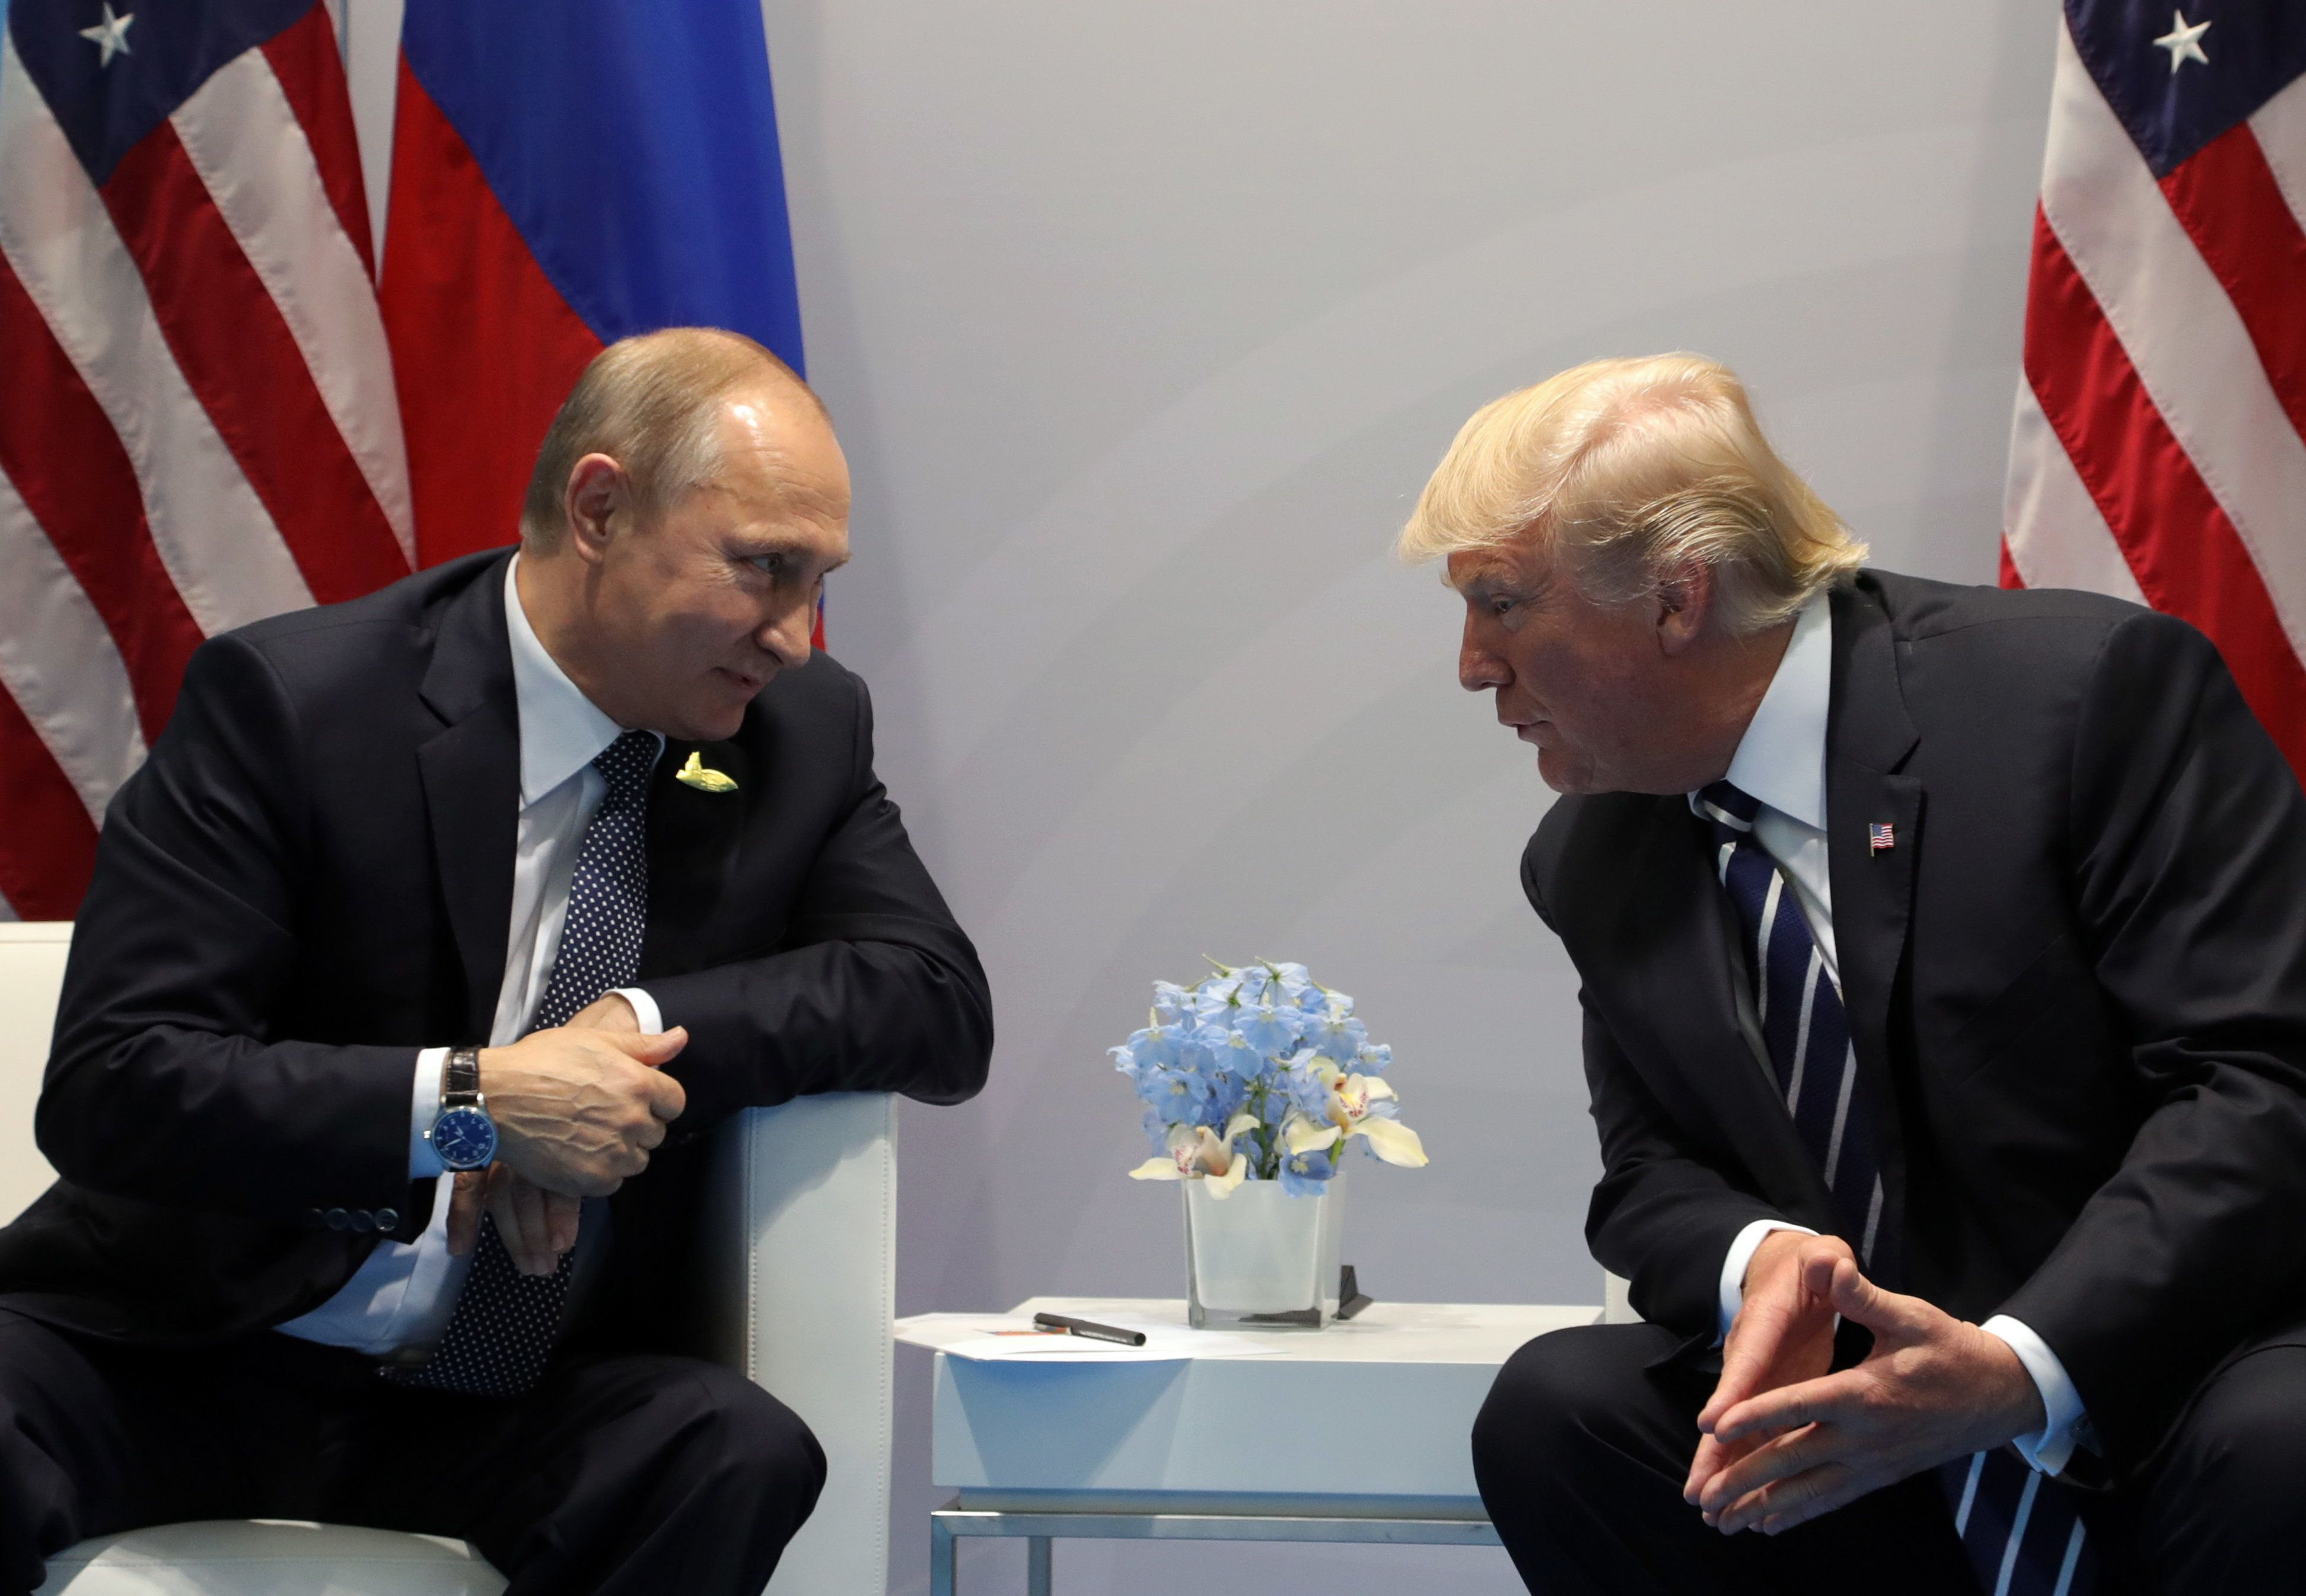 Who Is the Russian Lobbyist Who Met the Trump Team?